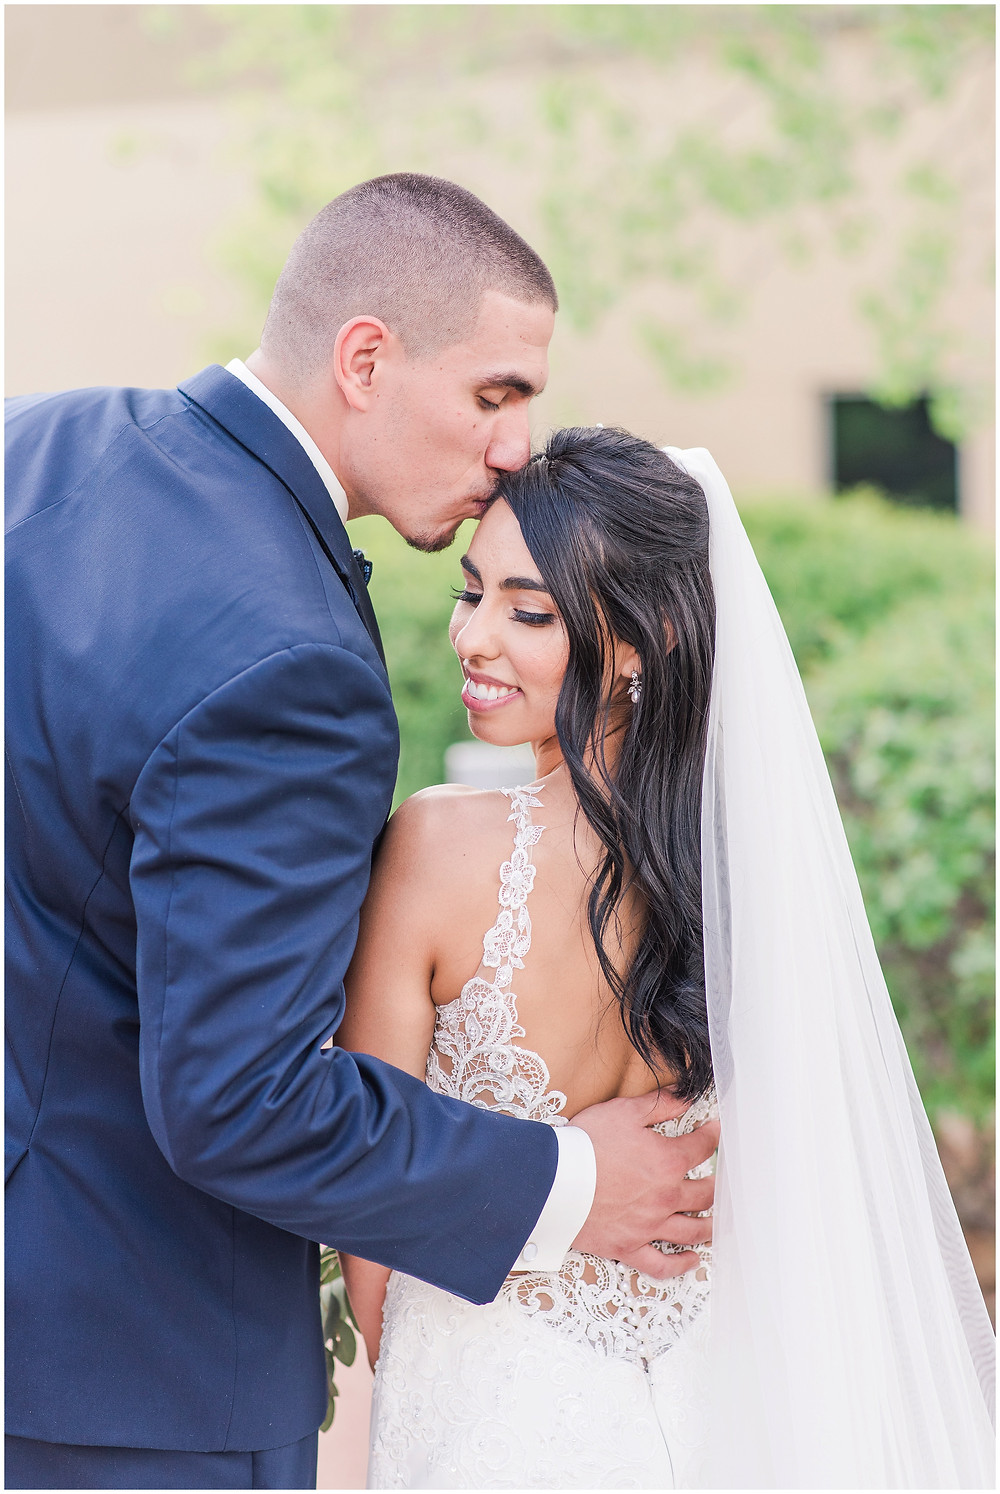 Bride and groom wedding photos. Groom kissing bride in backless lace wedding dress with long veil